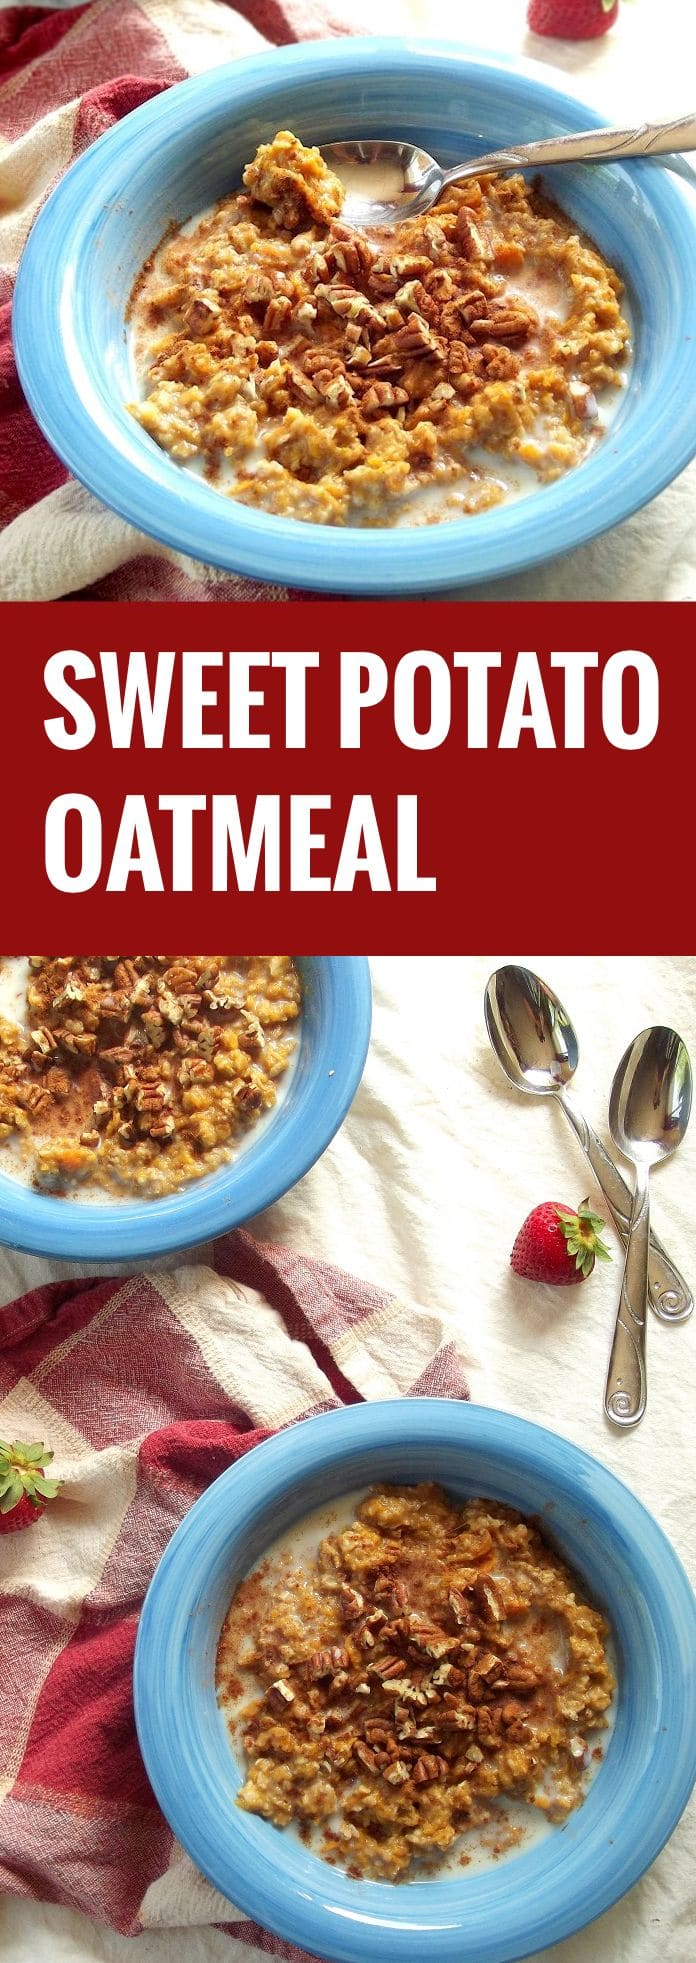 Sweet Potato Oatmeal